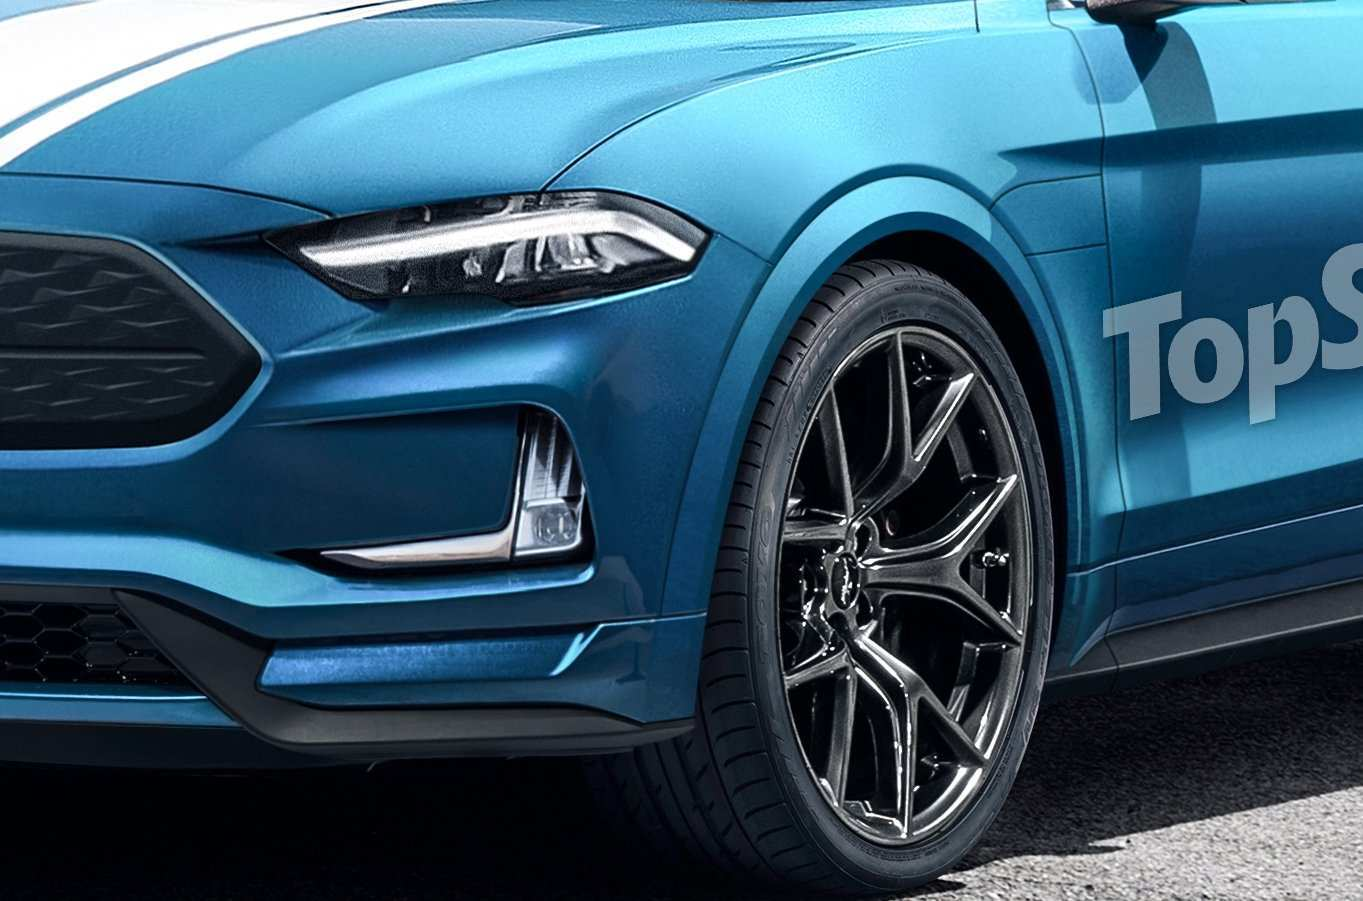 99 New 2020 Mustang Mach 1 Photos